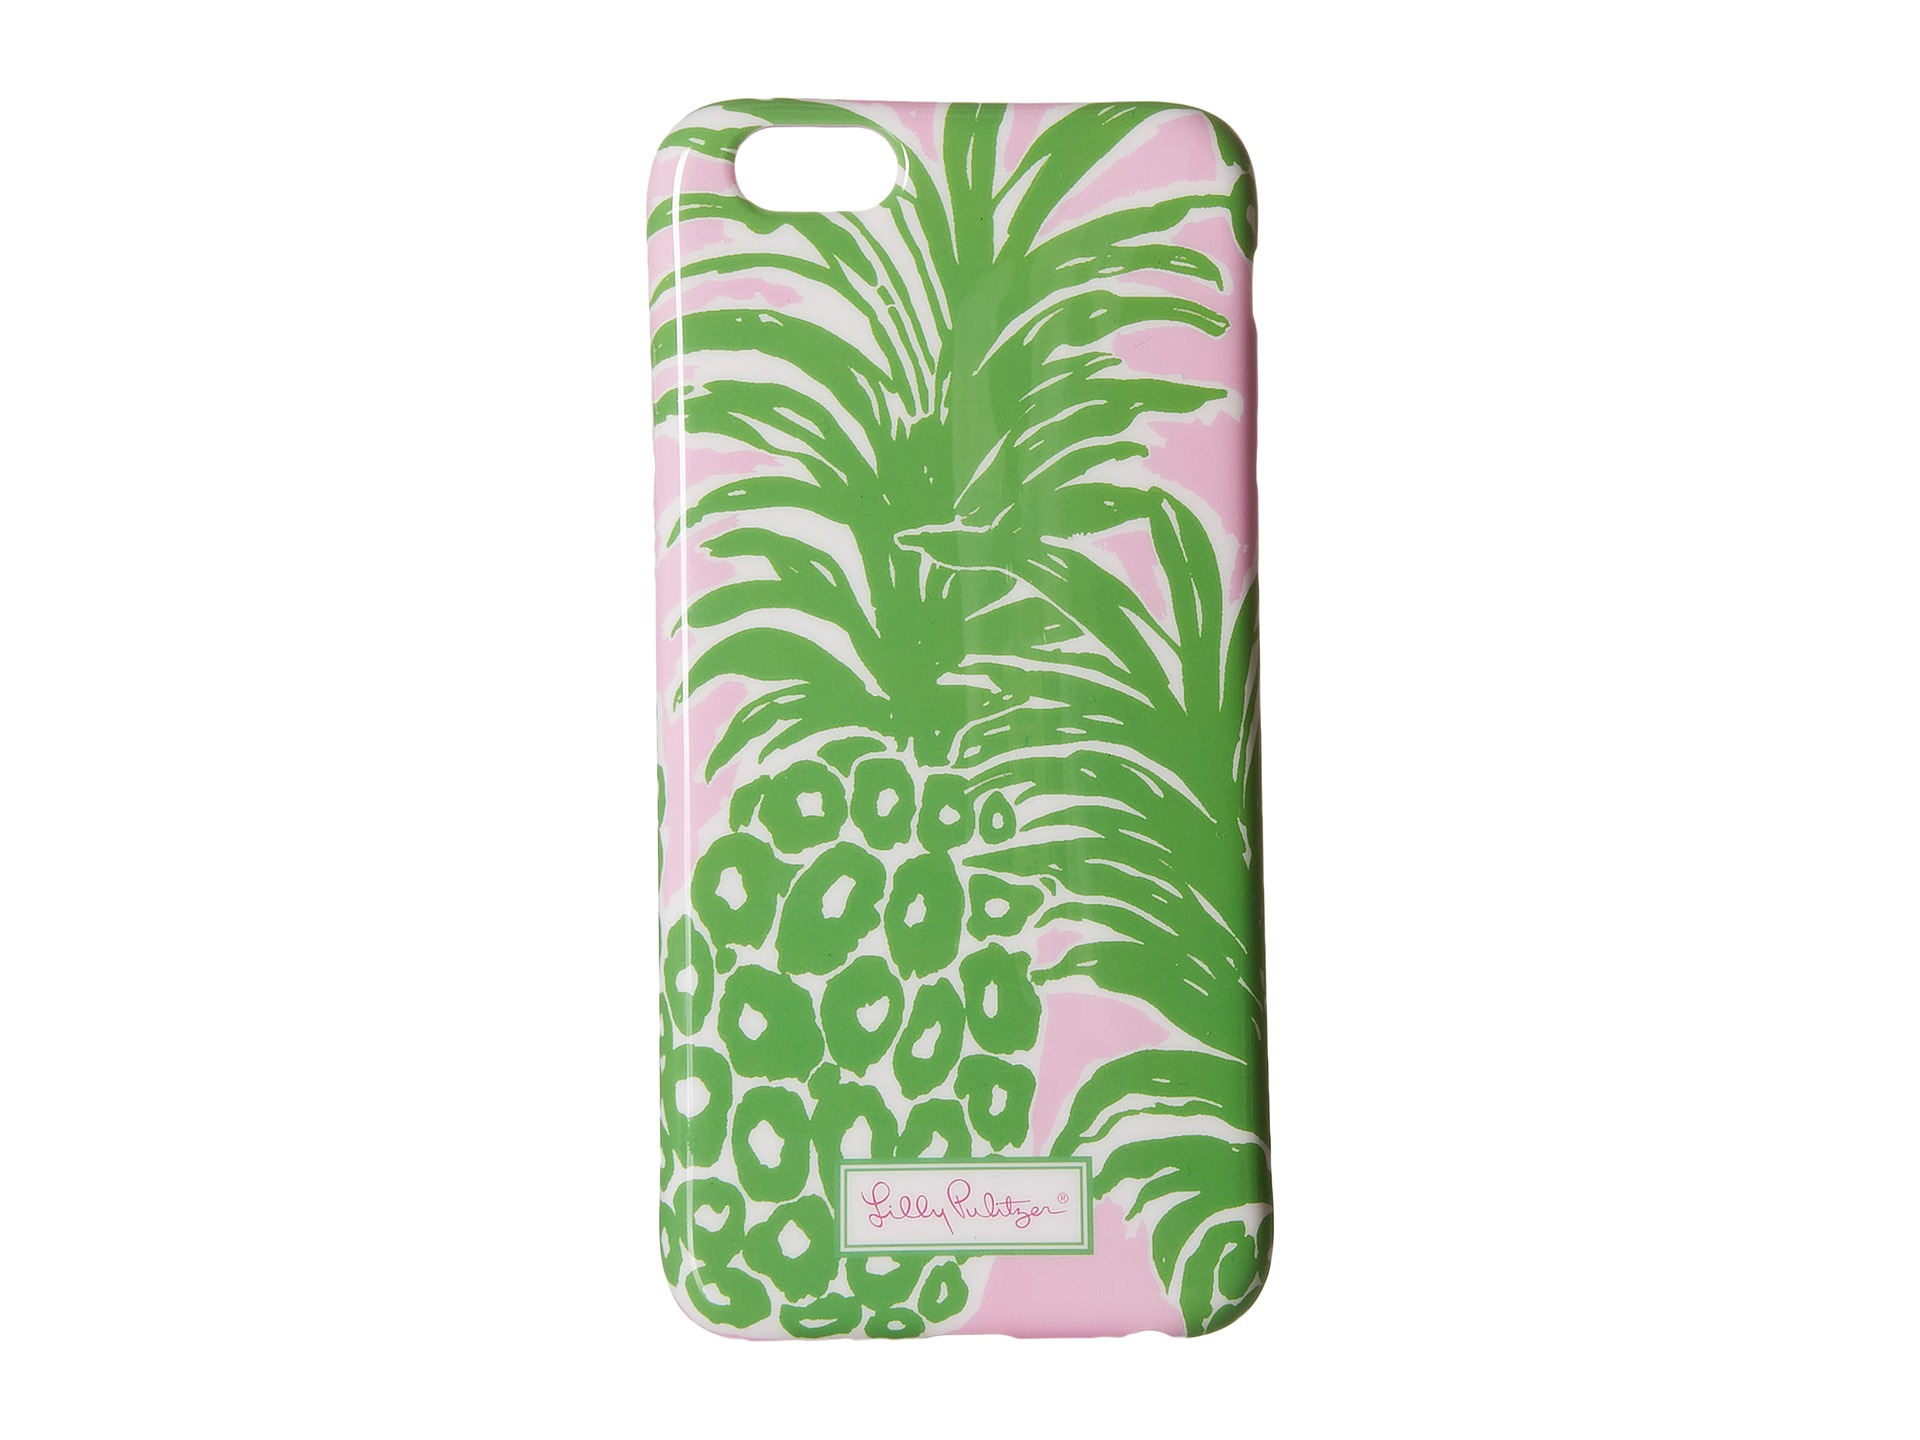 Enchanting Lilly Pulitzer Phone Case for Phone Accessories Ideas: Lilly Pulitzer Phone Case | Lilly Pulitzer Phone | Lilly Pulitzer Elephant Case